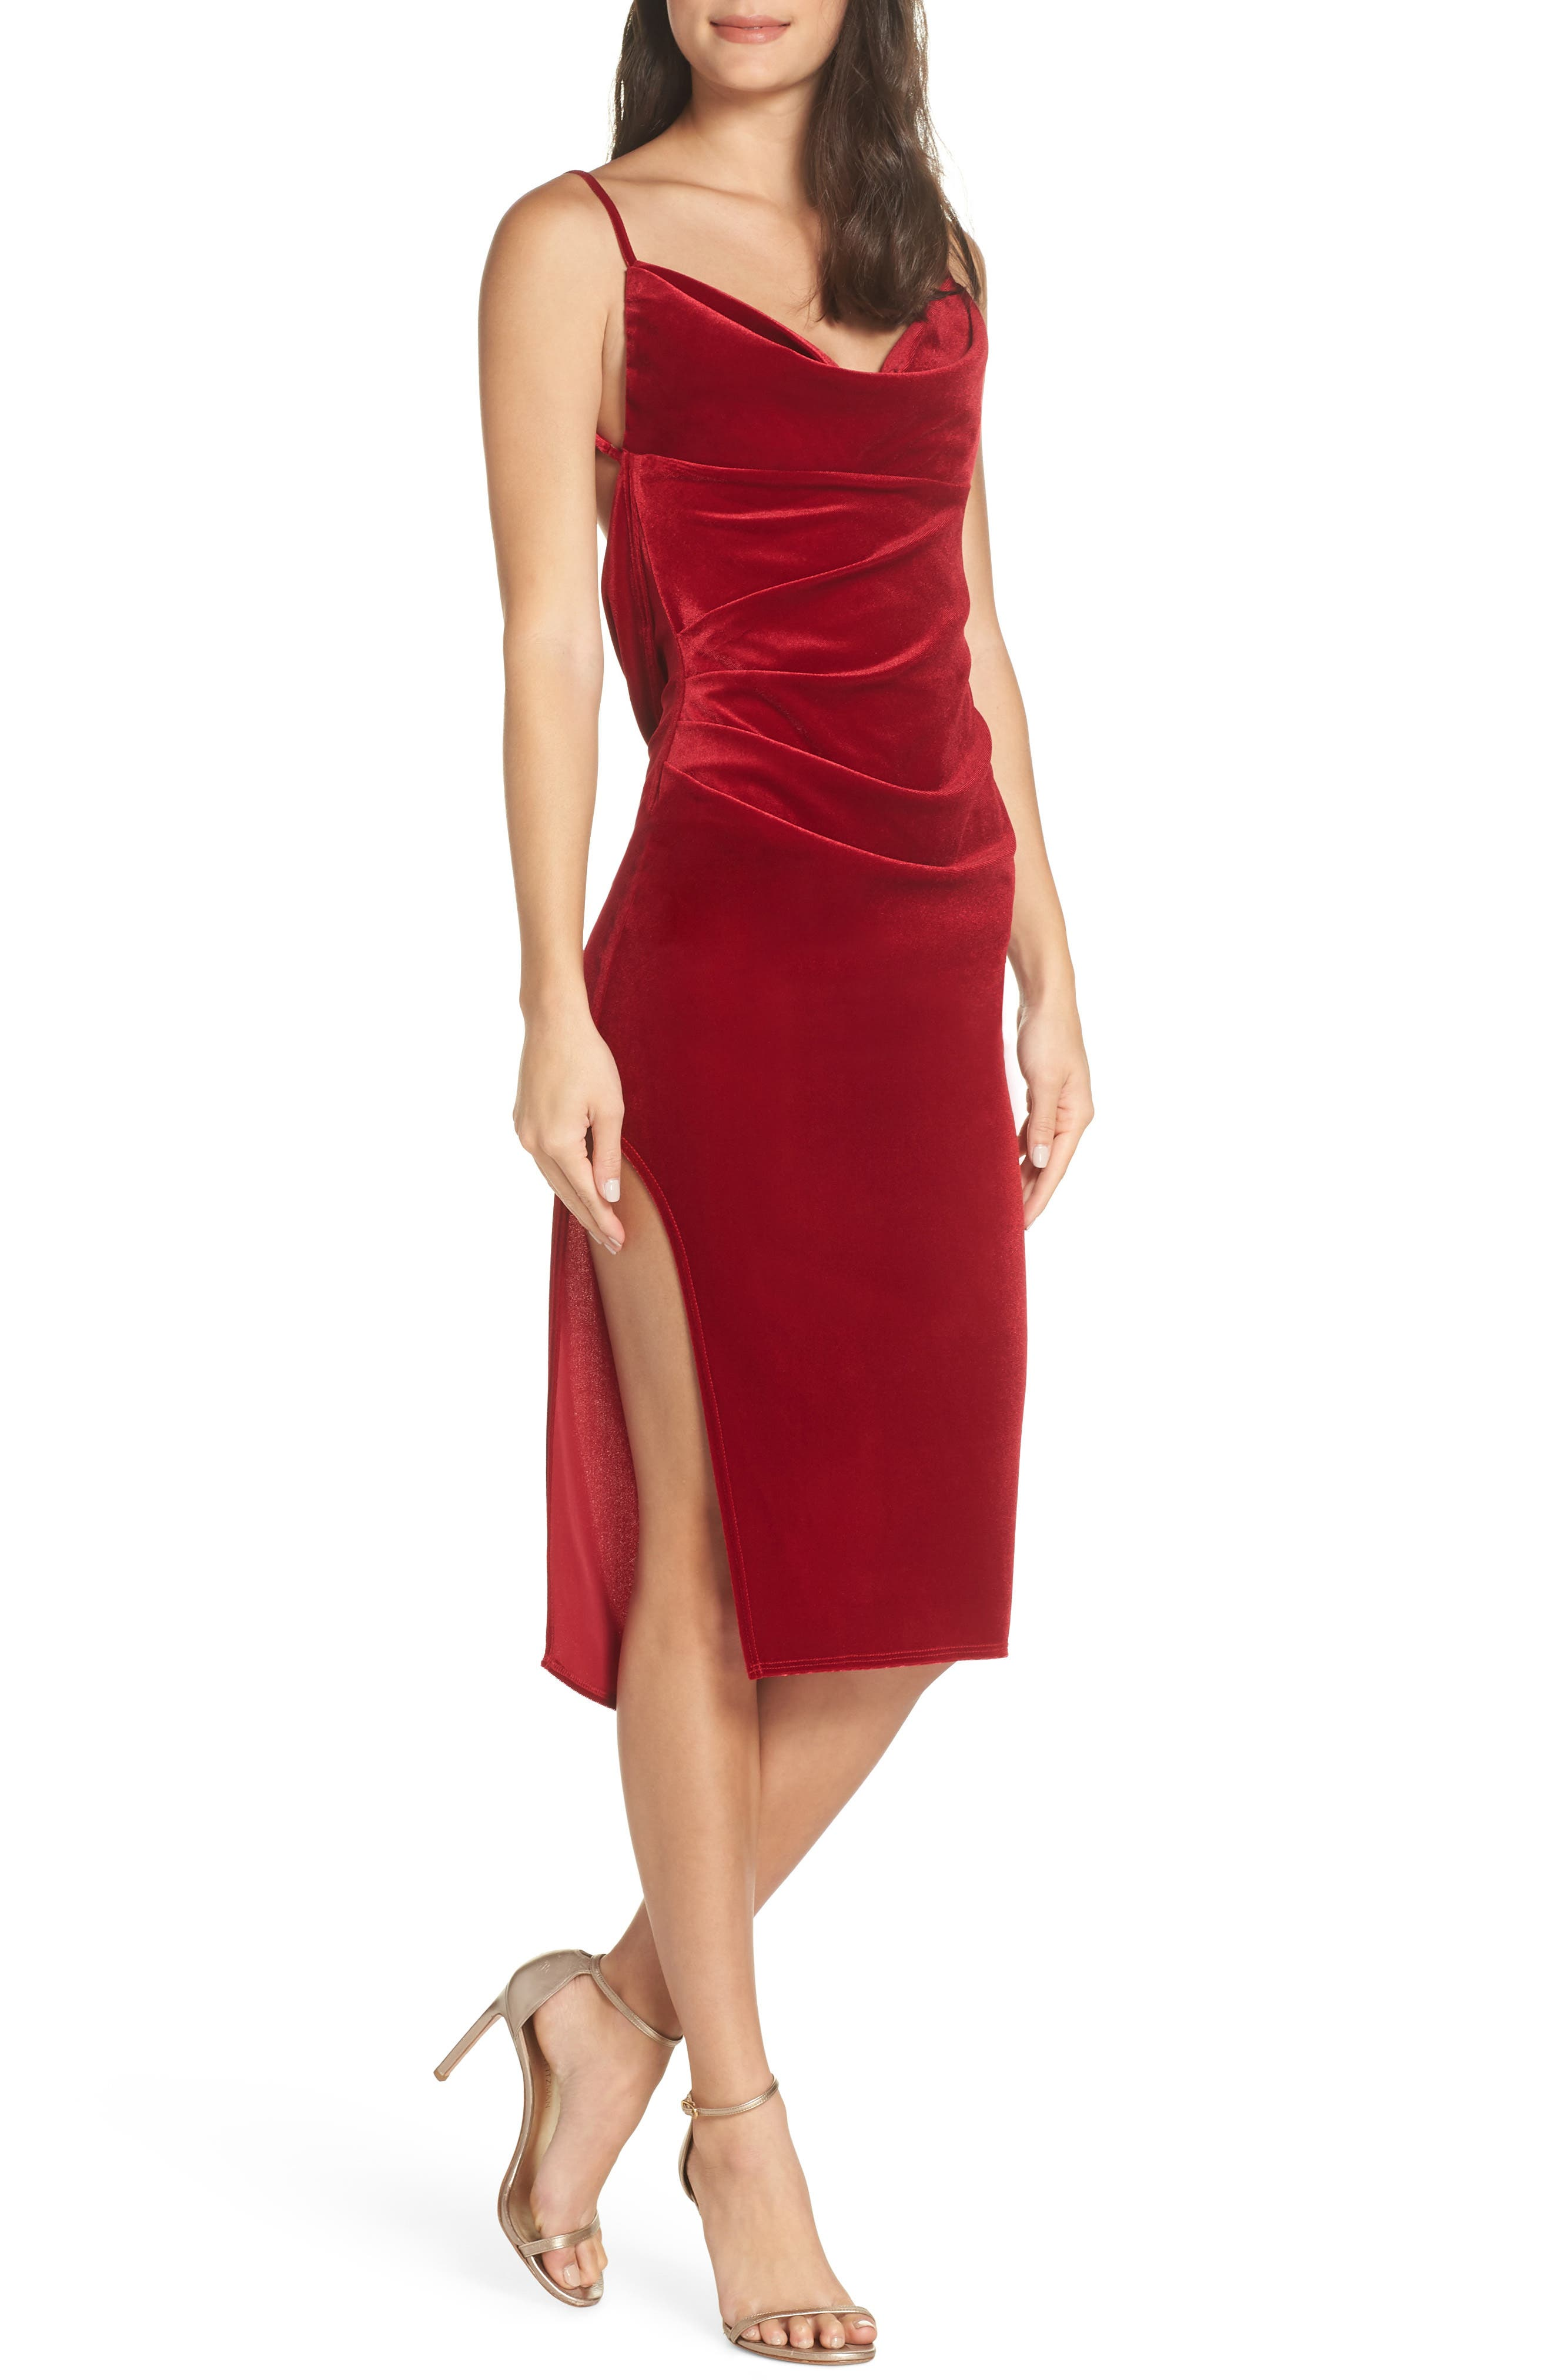 Katie May Cowl Neck Gathered Dress